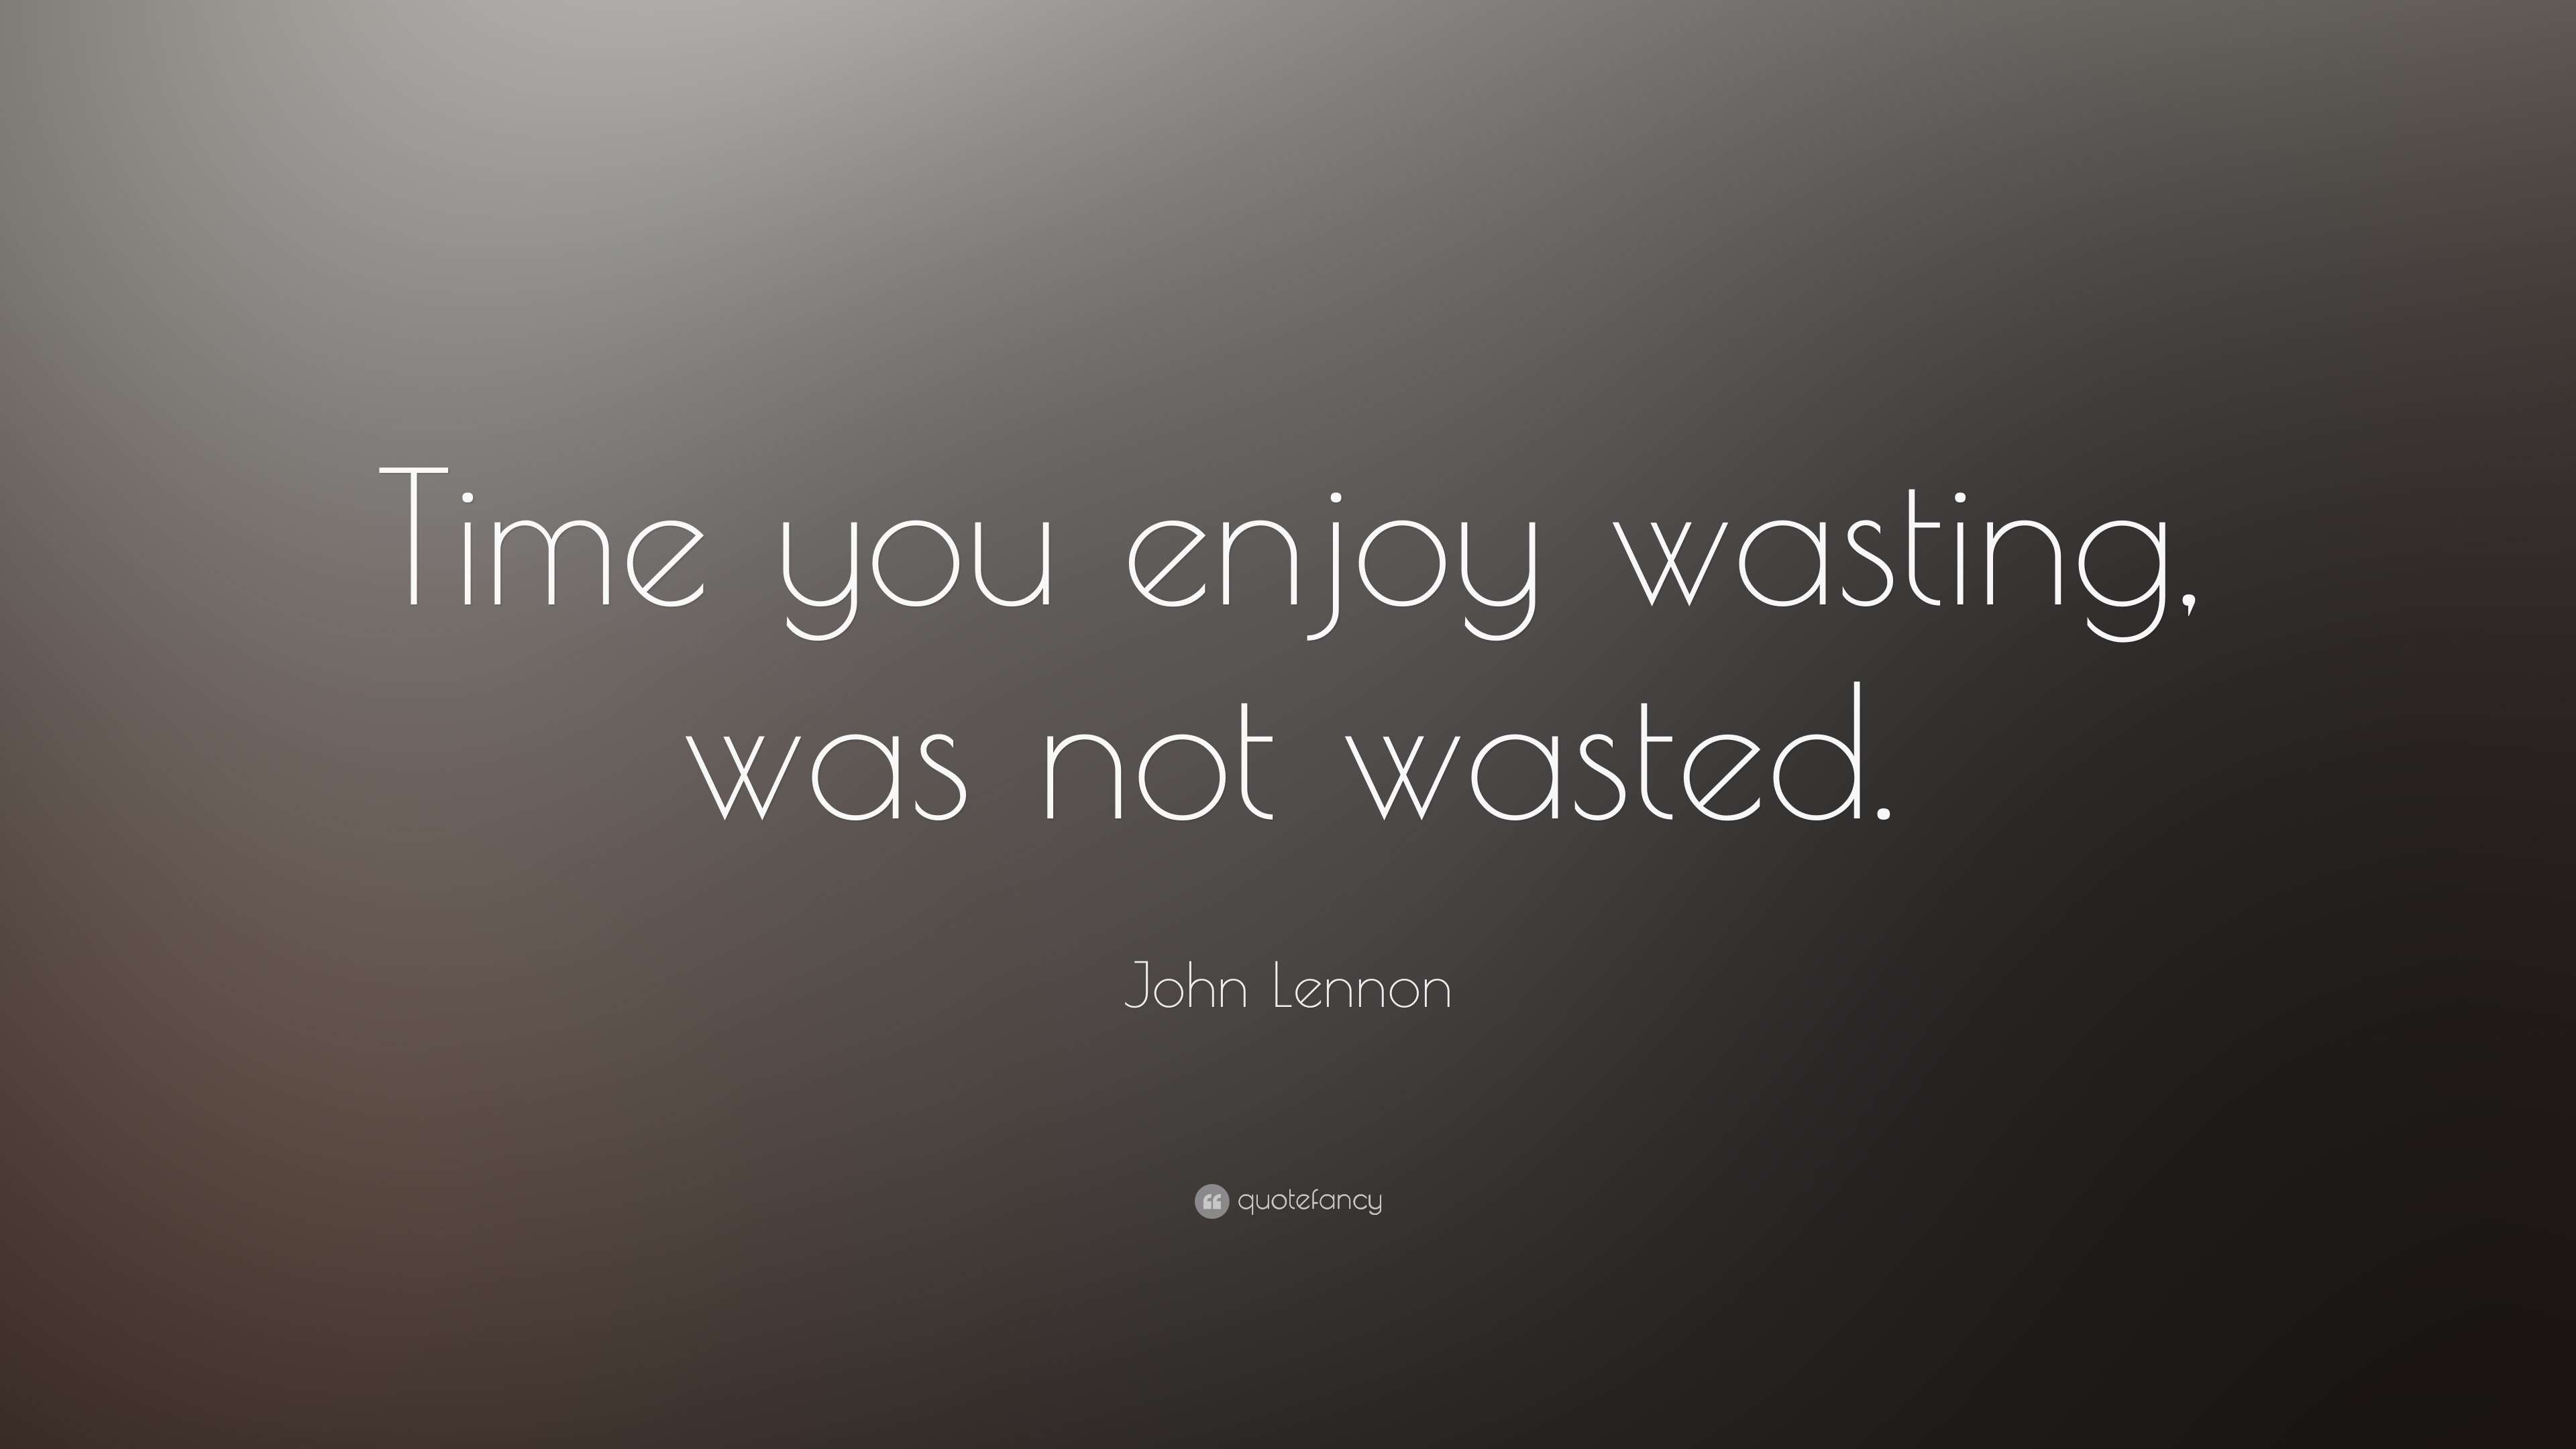 [Image] Don't regret time wasted. if you enjoyed it at the time then it wasn't wasted. keep positive, don't dwell and enjoy life.